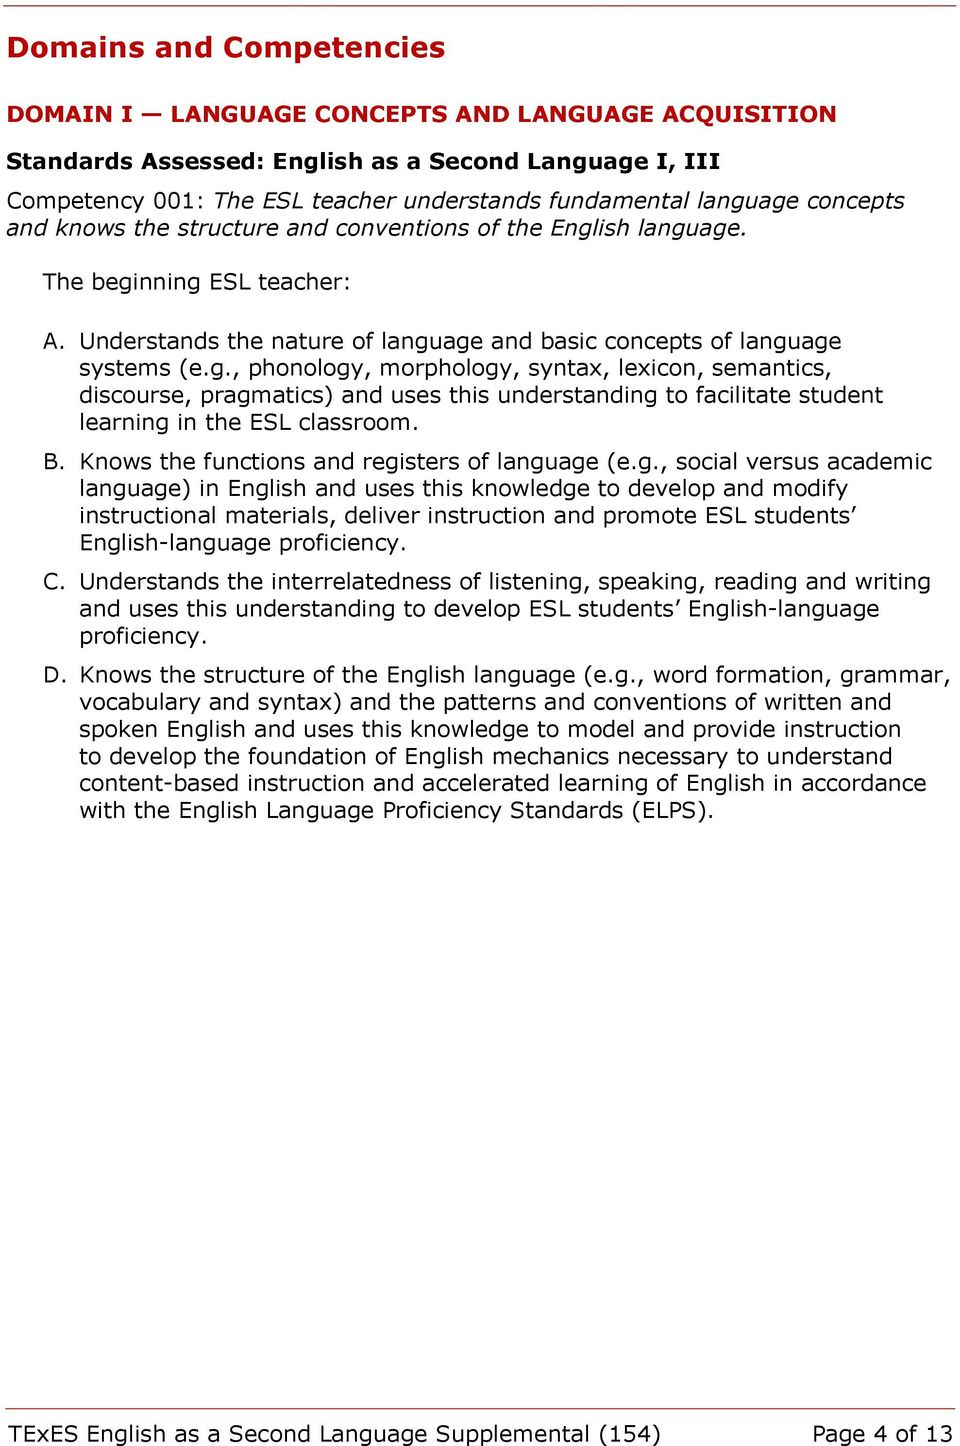 ish language. A. Understands the nature of language and basic concepts of language systems (e.g., phonology, morphology, syntax, lexicon, semantics, discourse, pragmatics) and uses this understanding to facilitate student learning in the ESL classroom.